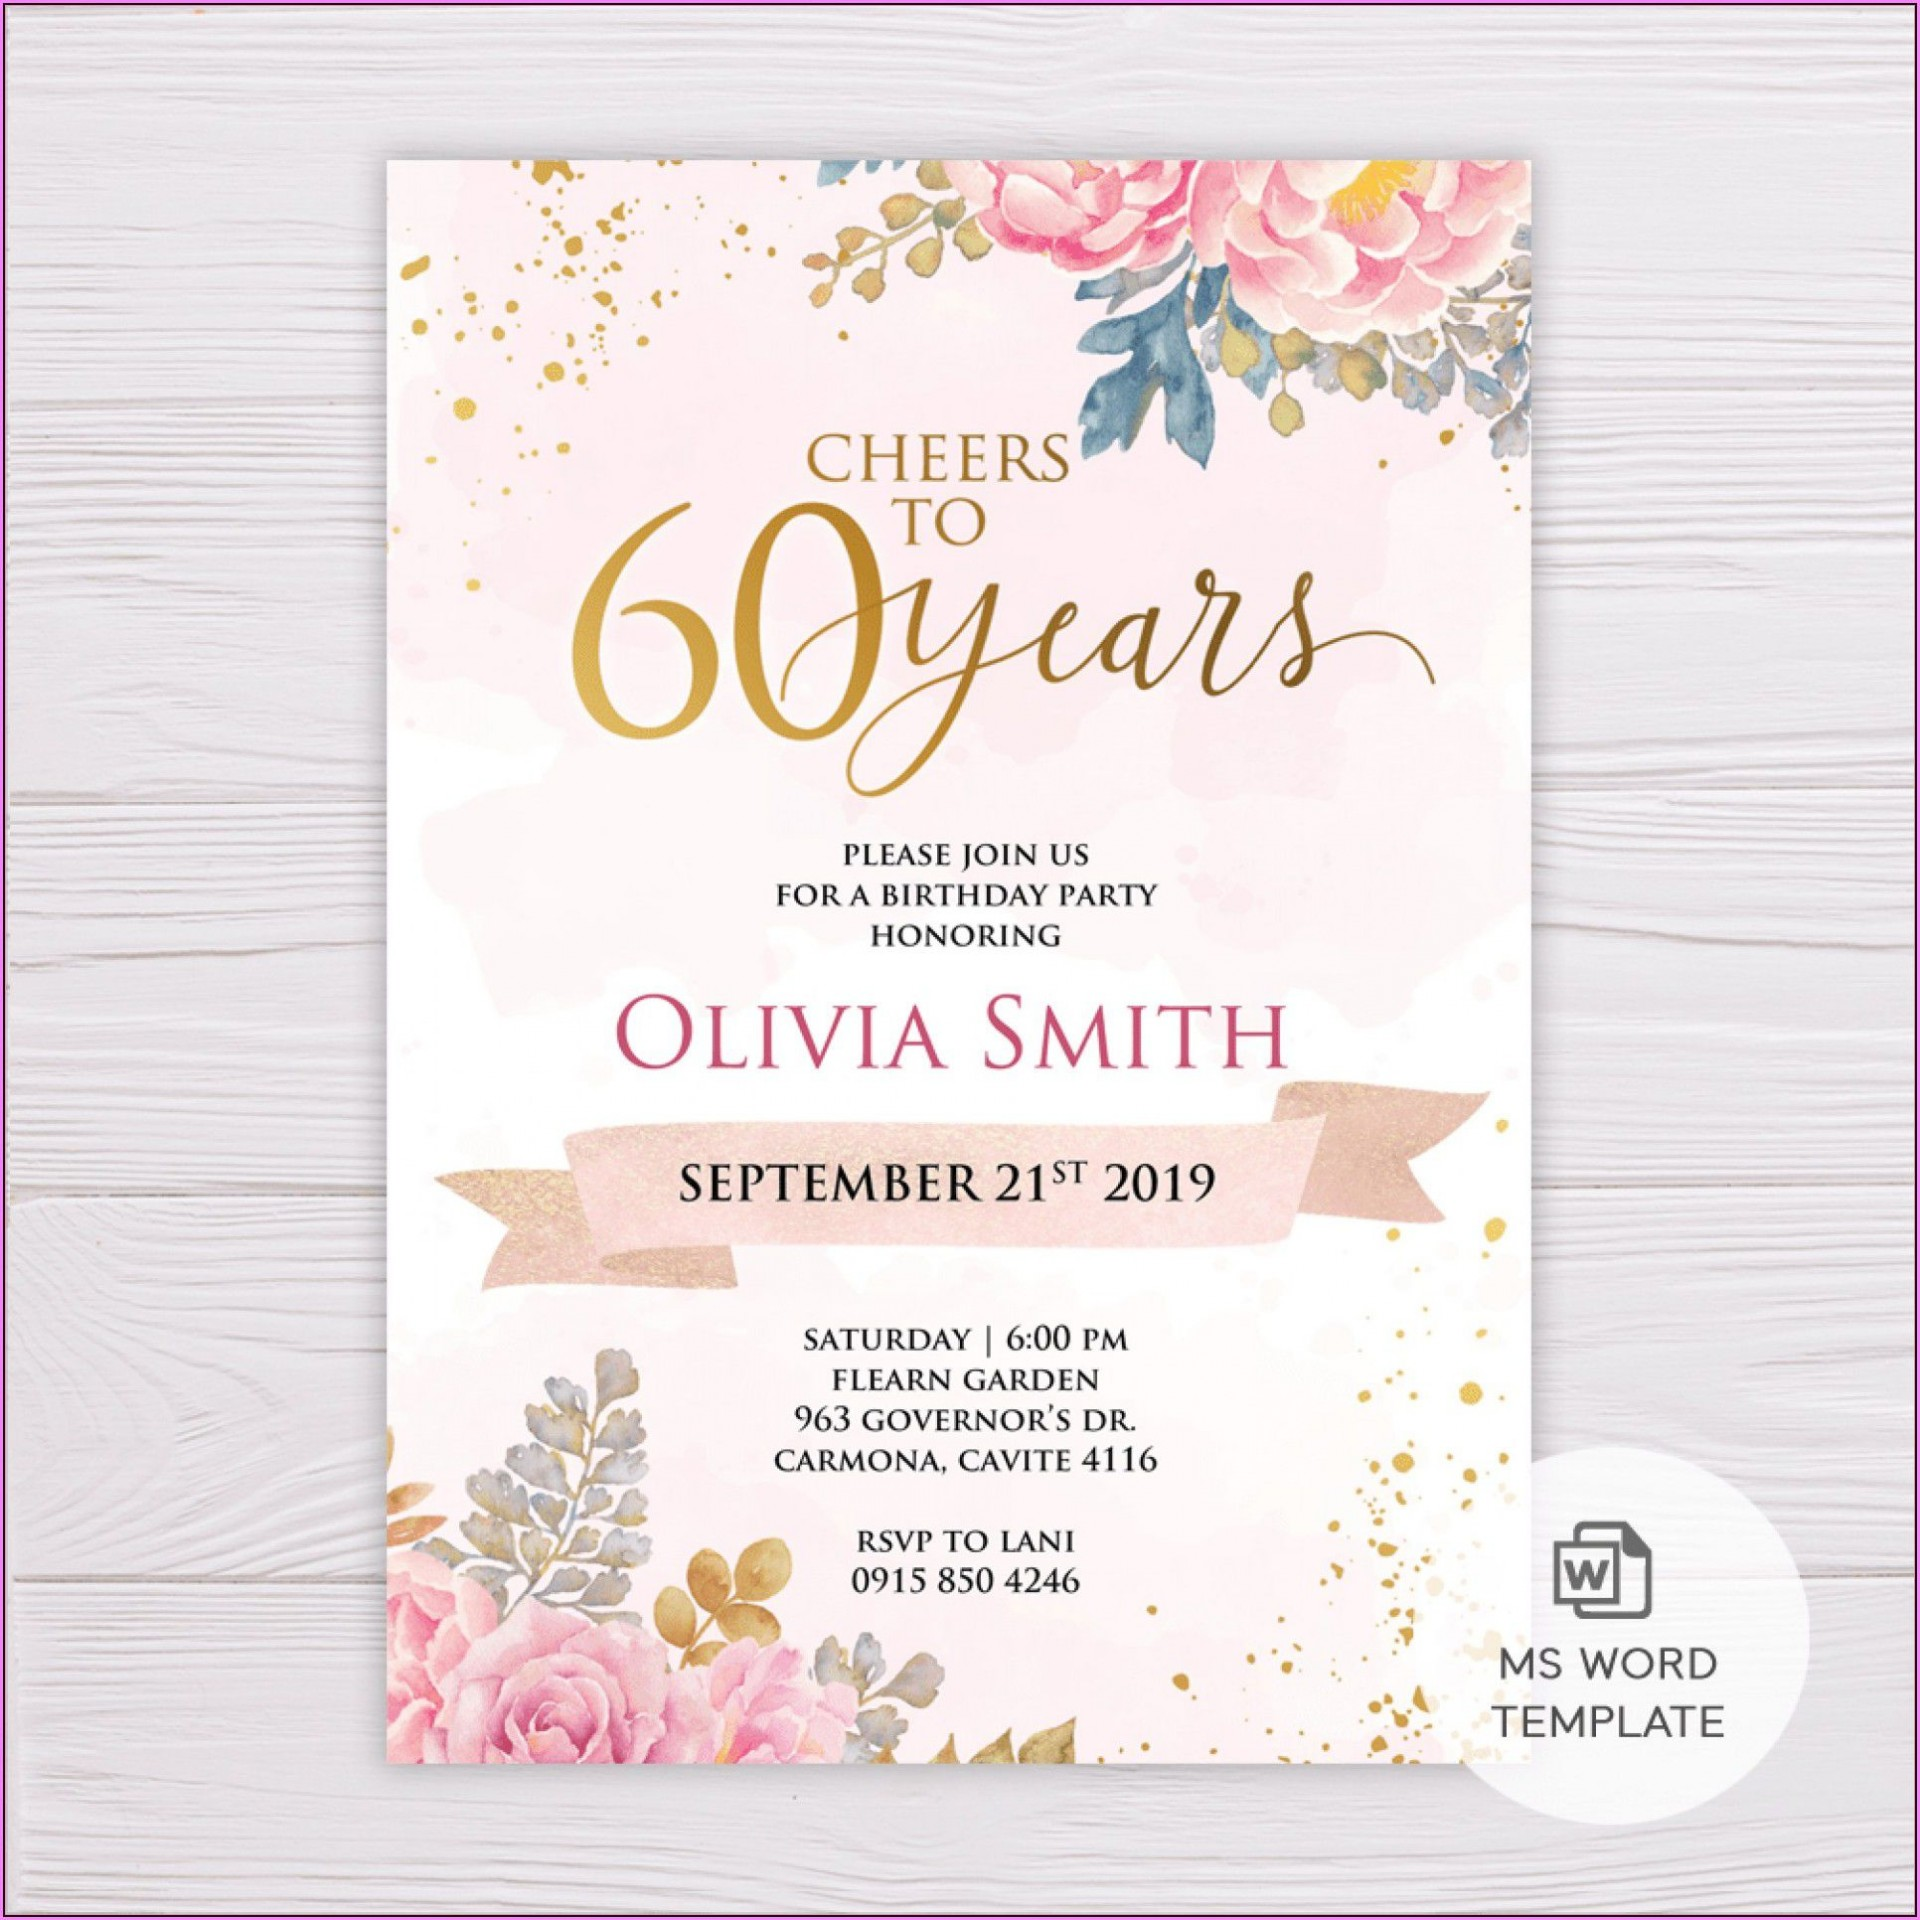 008 Rare 60th Birthday Invite Template Highest Clarity  Templates Funny Invitation Free Party1920